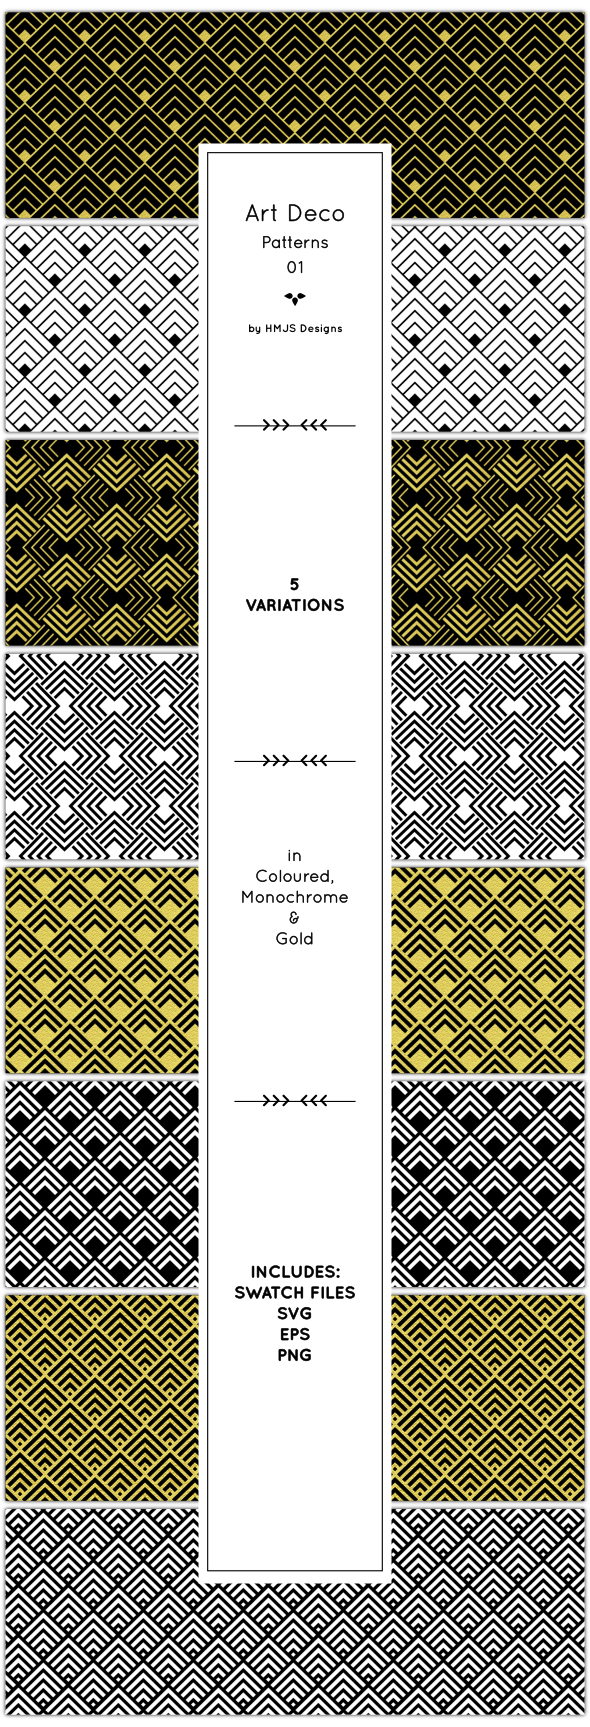 Art Deco Patterns, Vol 1 - Textures / Fills / Patterns Illustrator